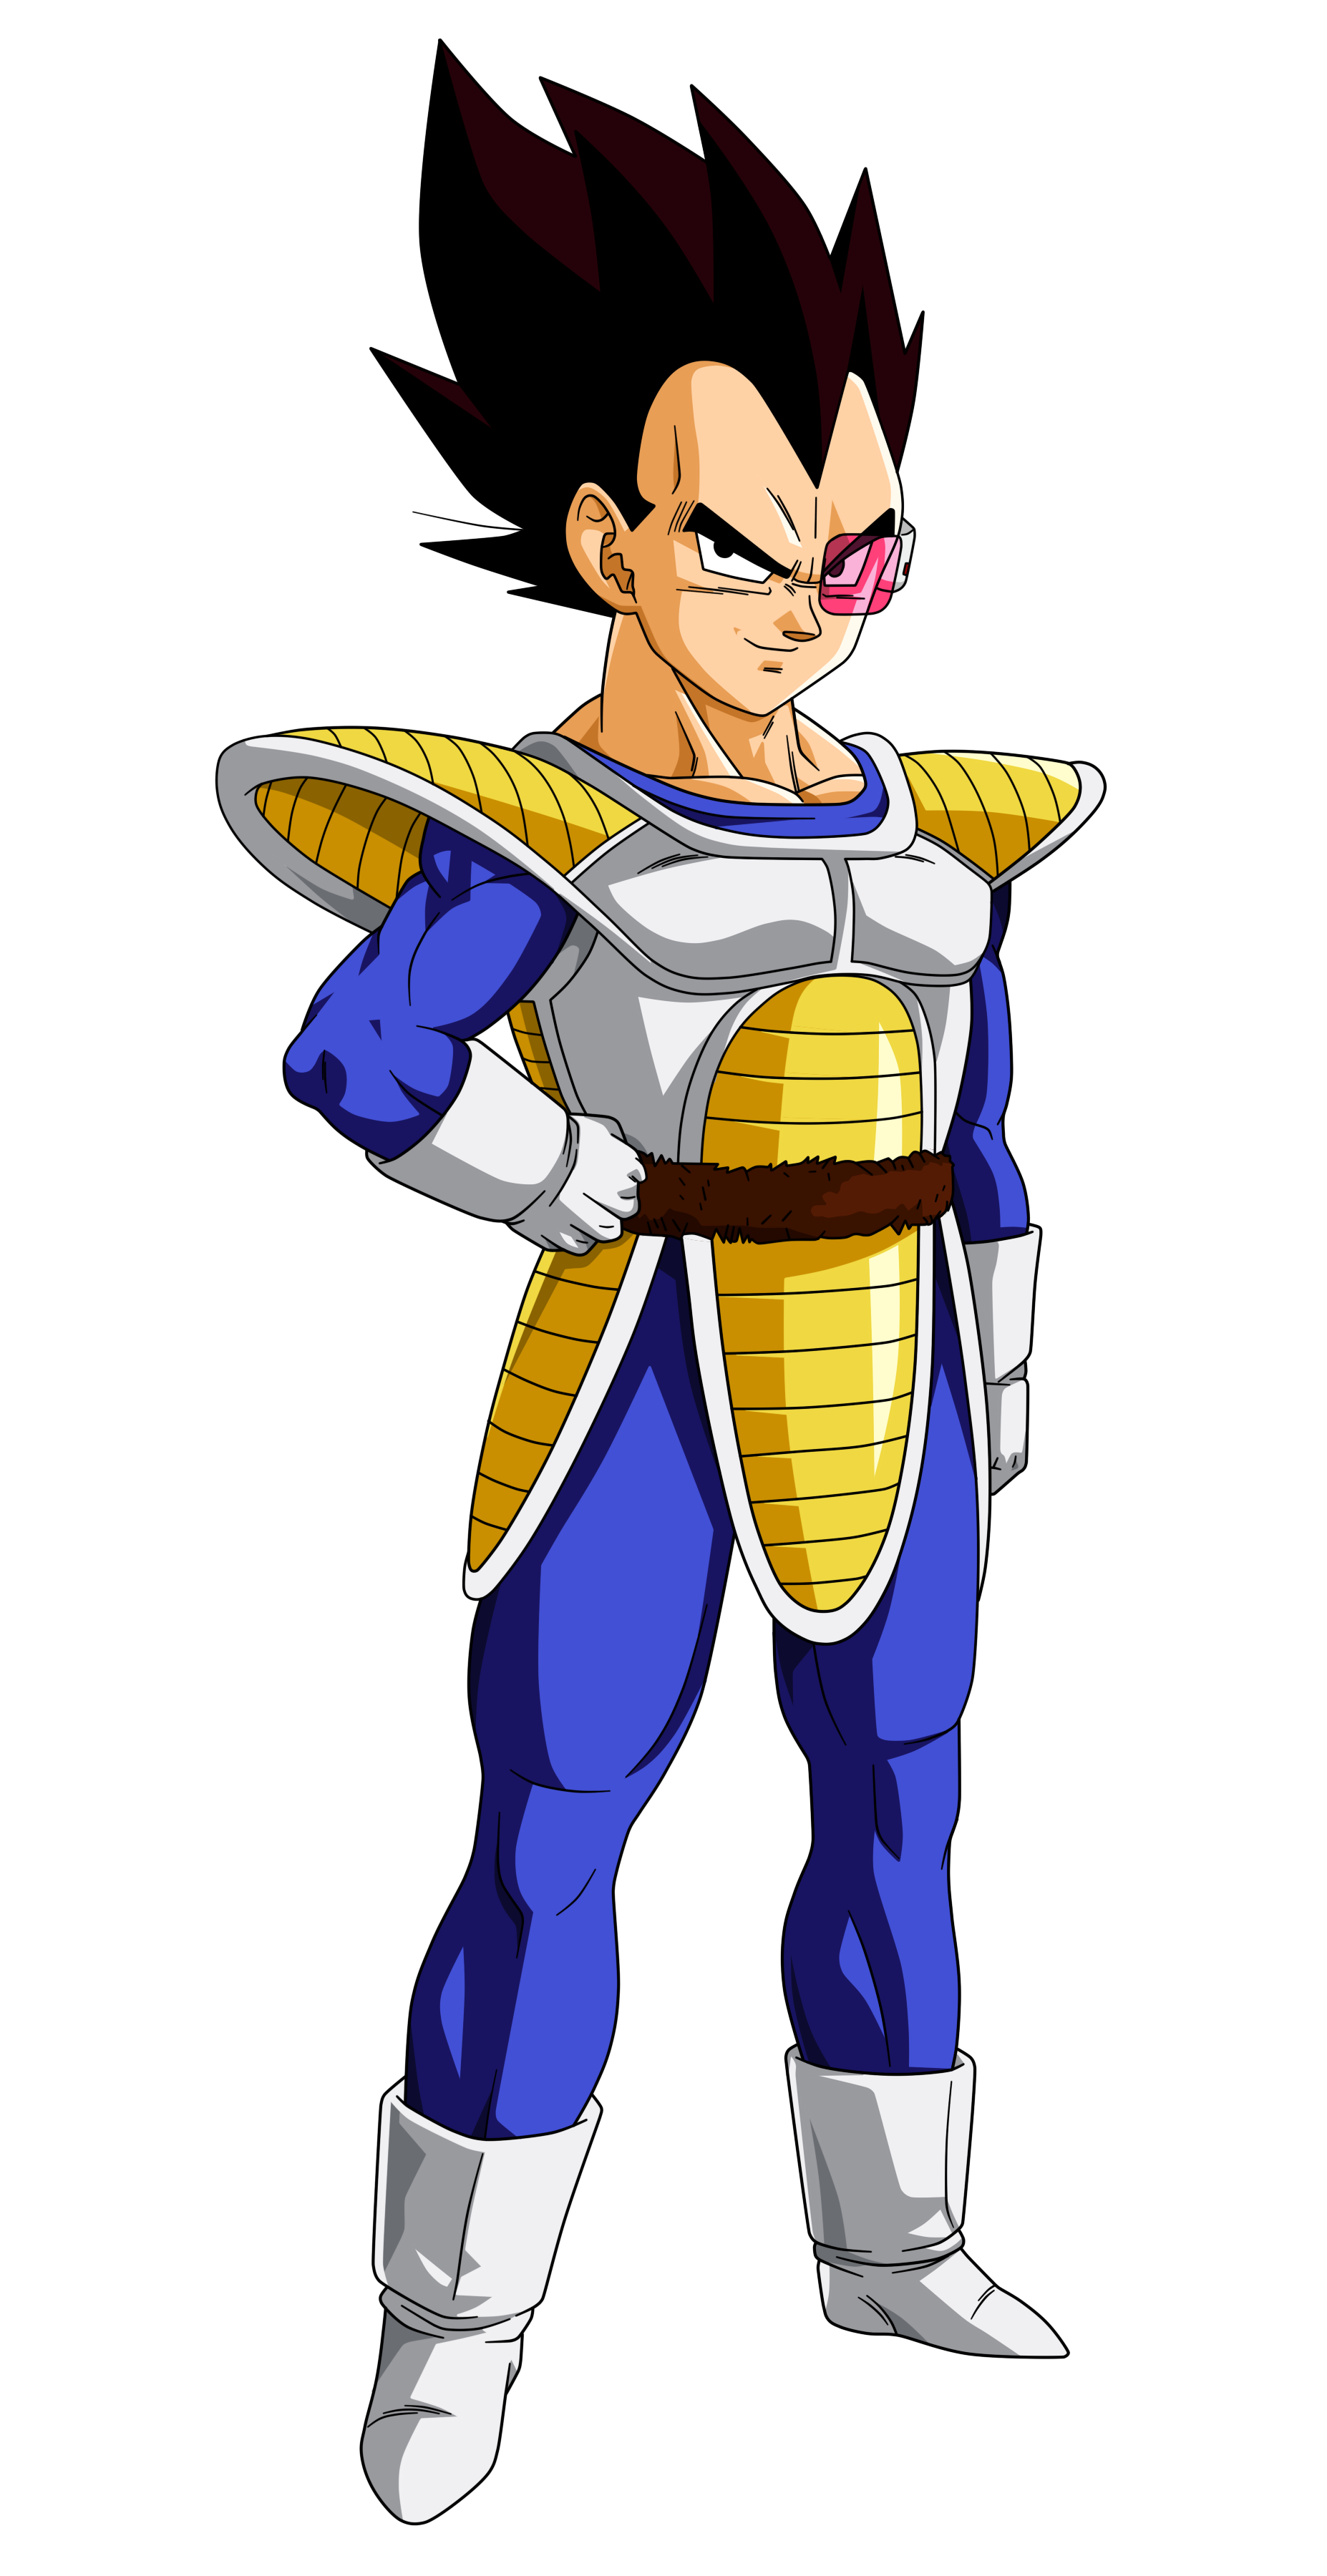 Dragon ball super vegeta png. Villains wiki fandom powered